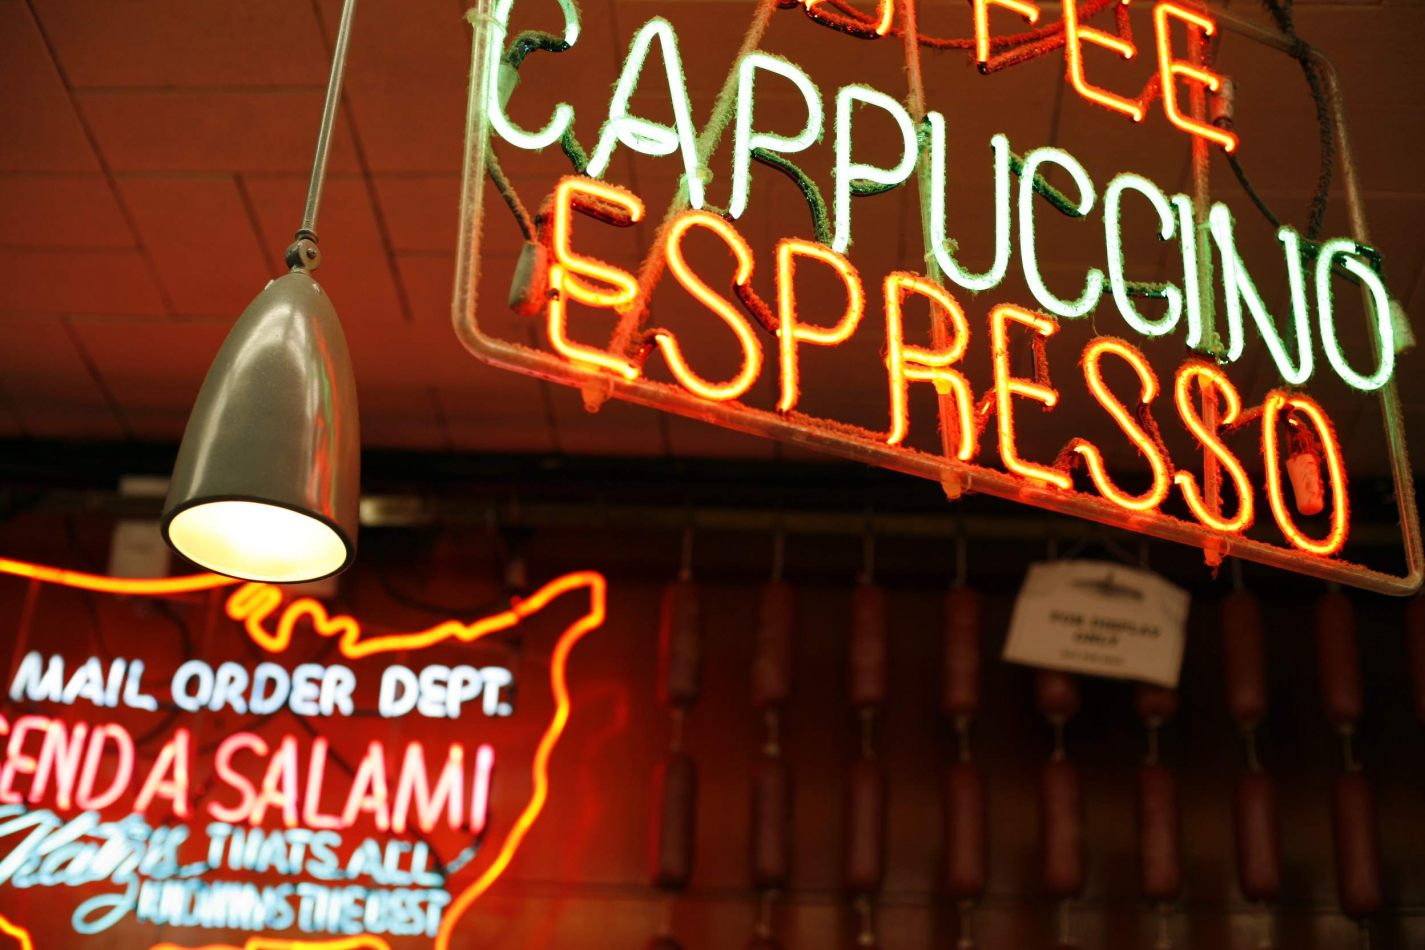 Anthony Ellis Photography: Come Unto Me - Cappuccino Espresso